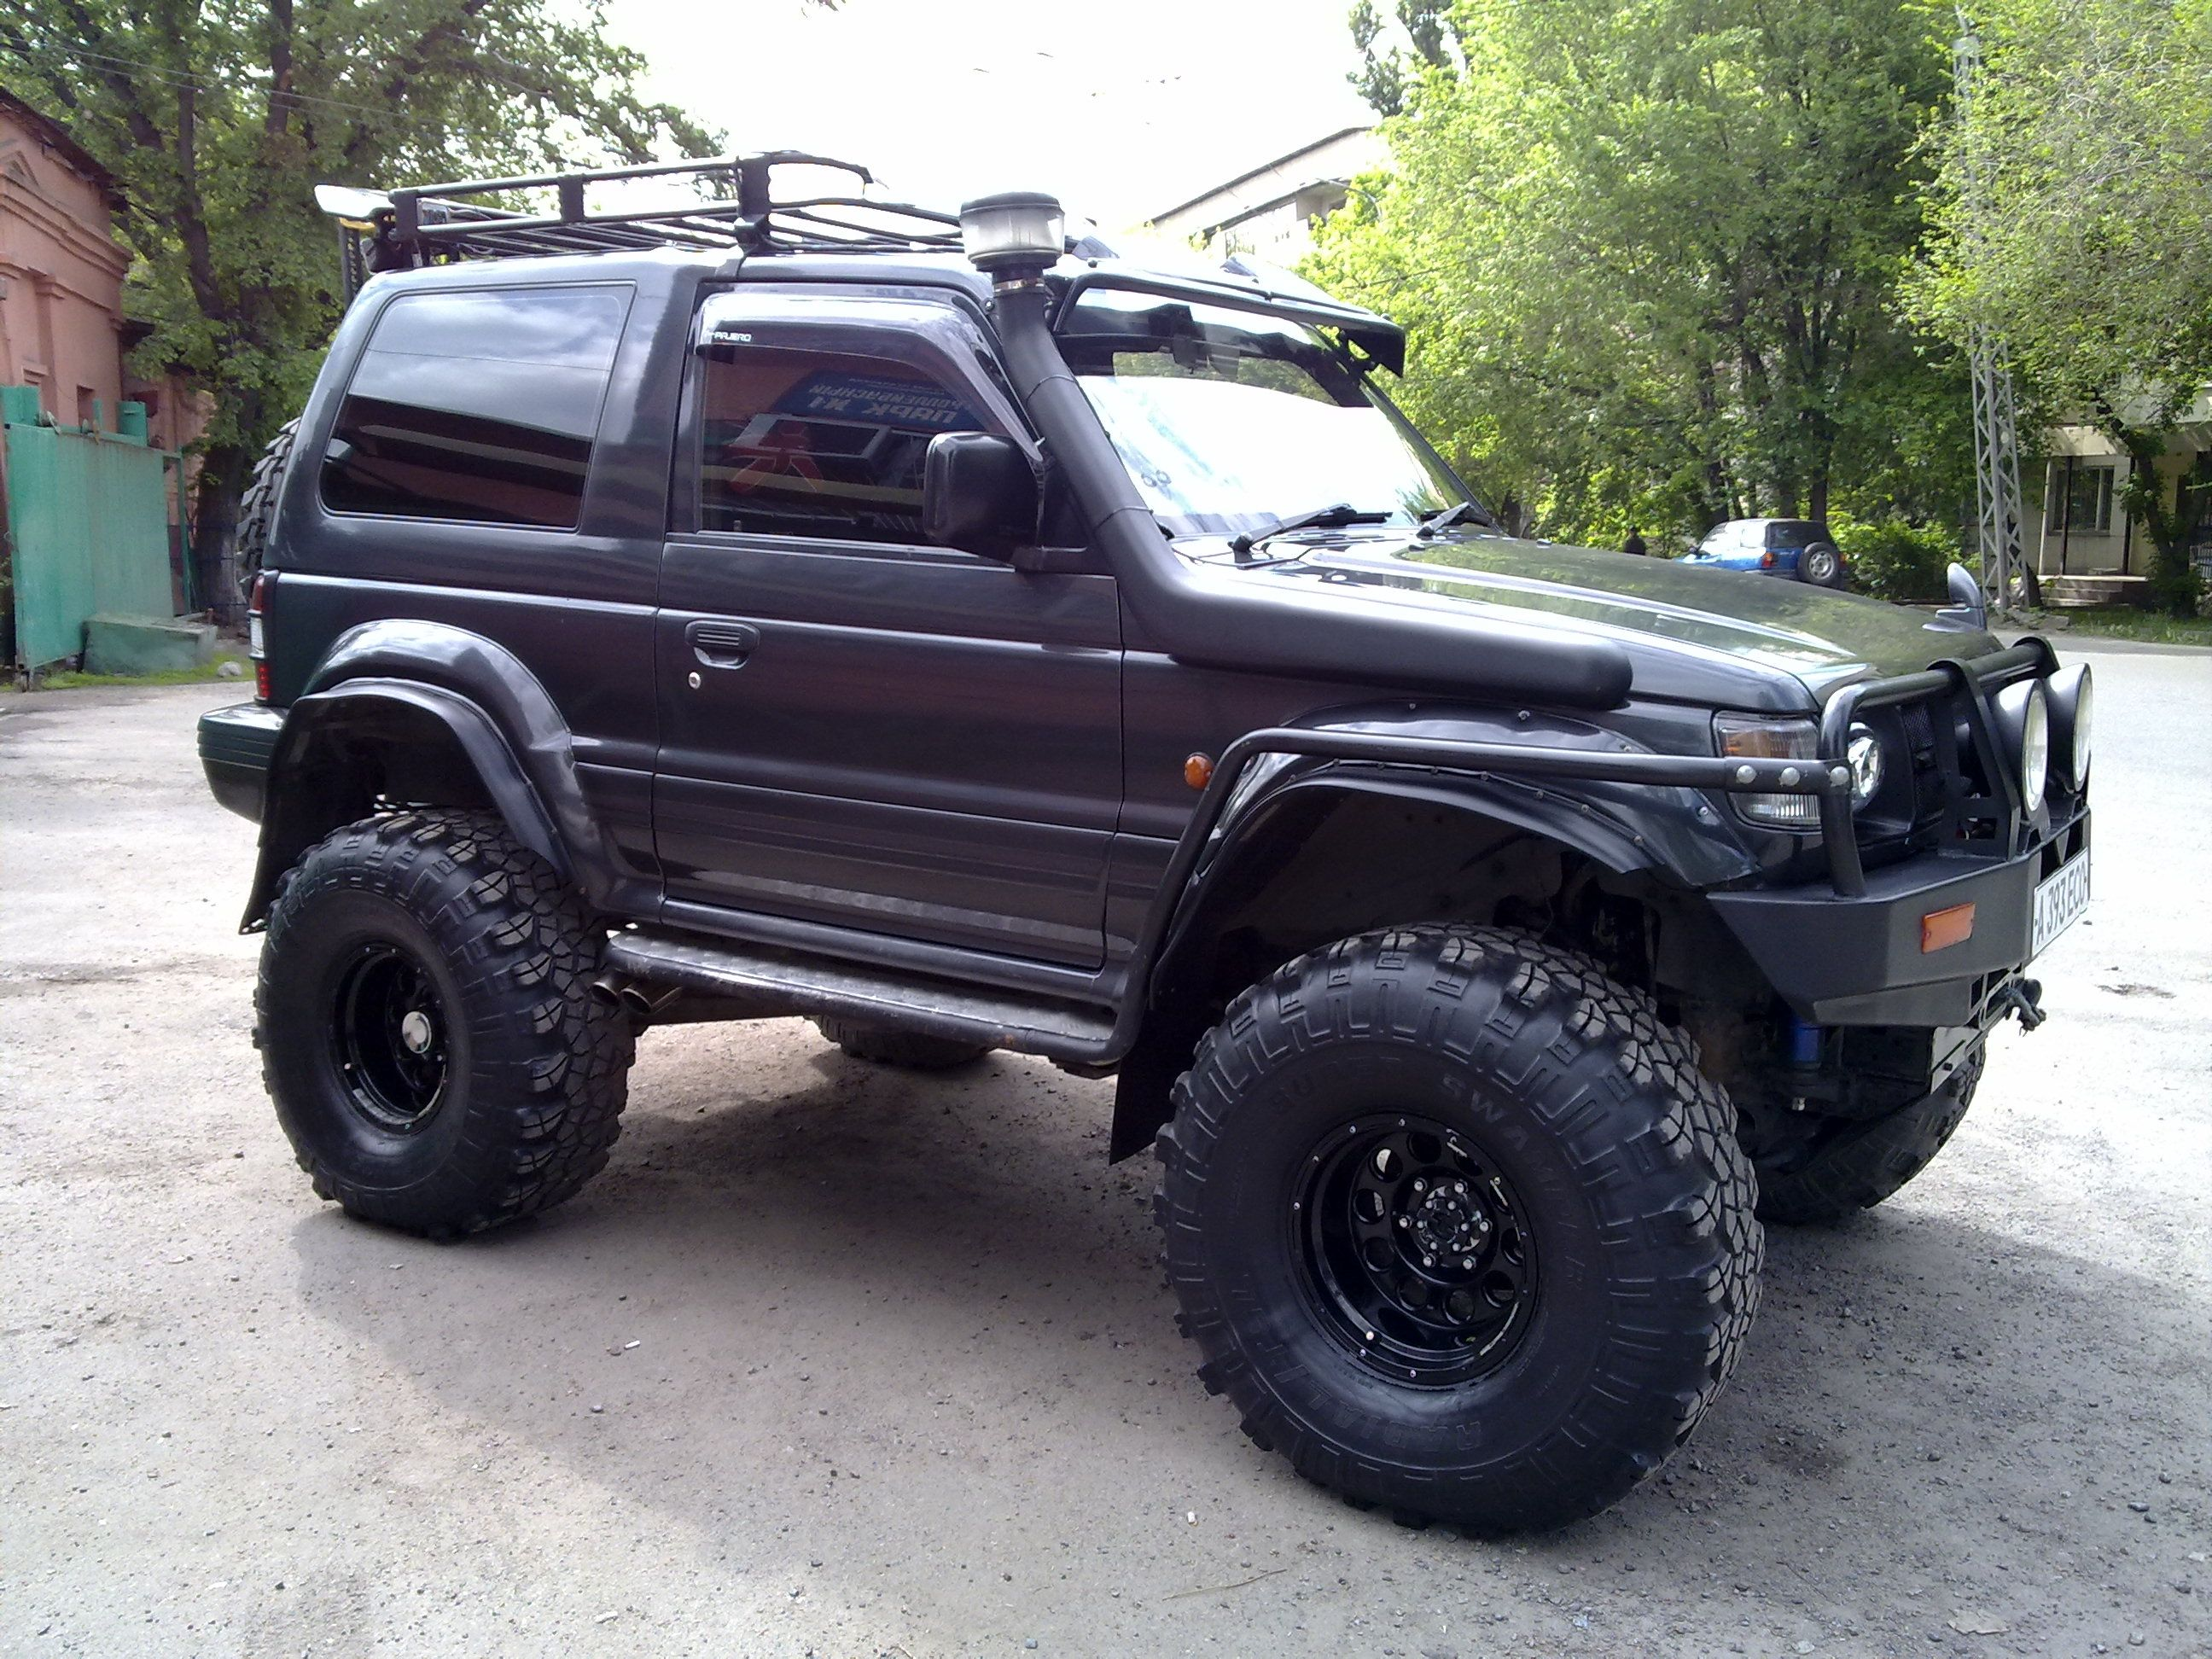 mitsubishi montero off road motorcycles cars trucks pinterest 4x4 mitsubishi pajero. Black Bedroom Furniture Sets. Home Design Ideas